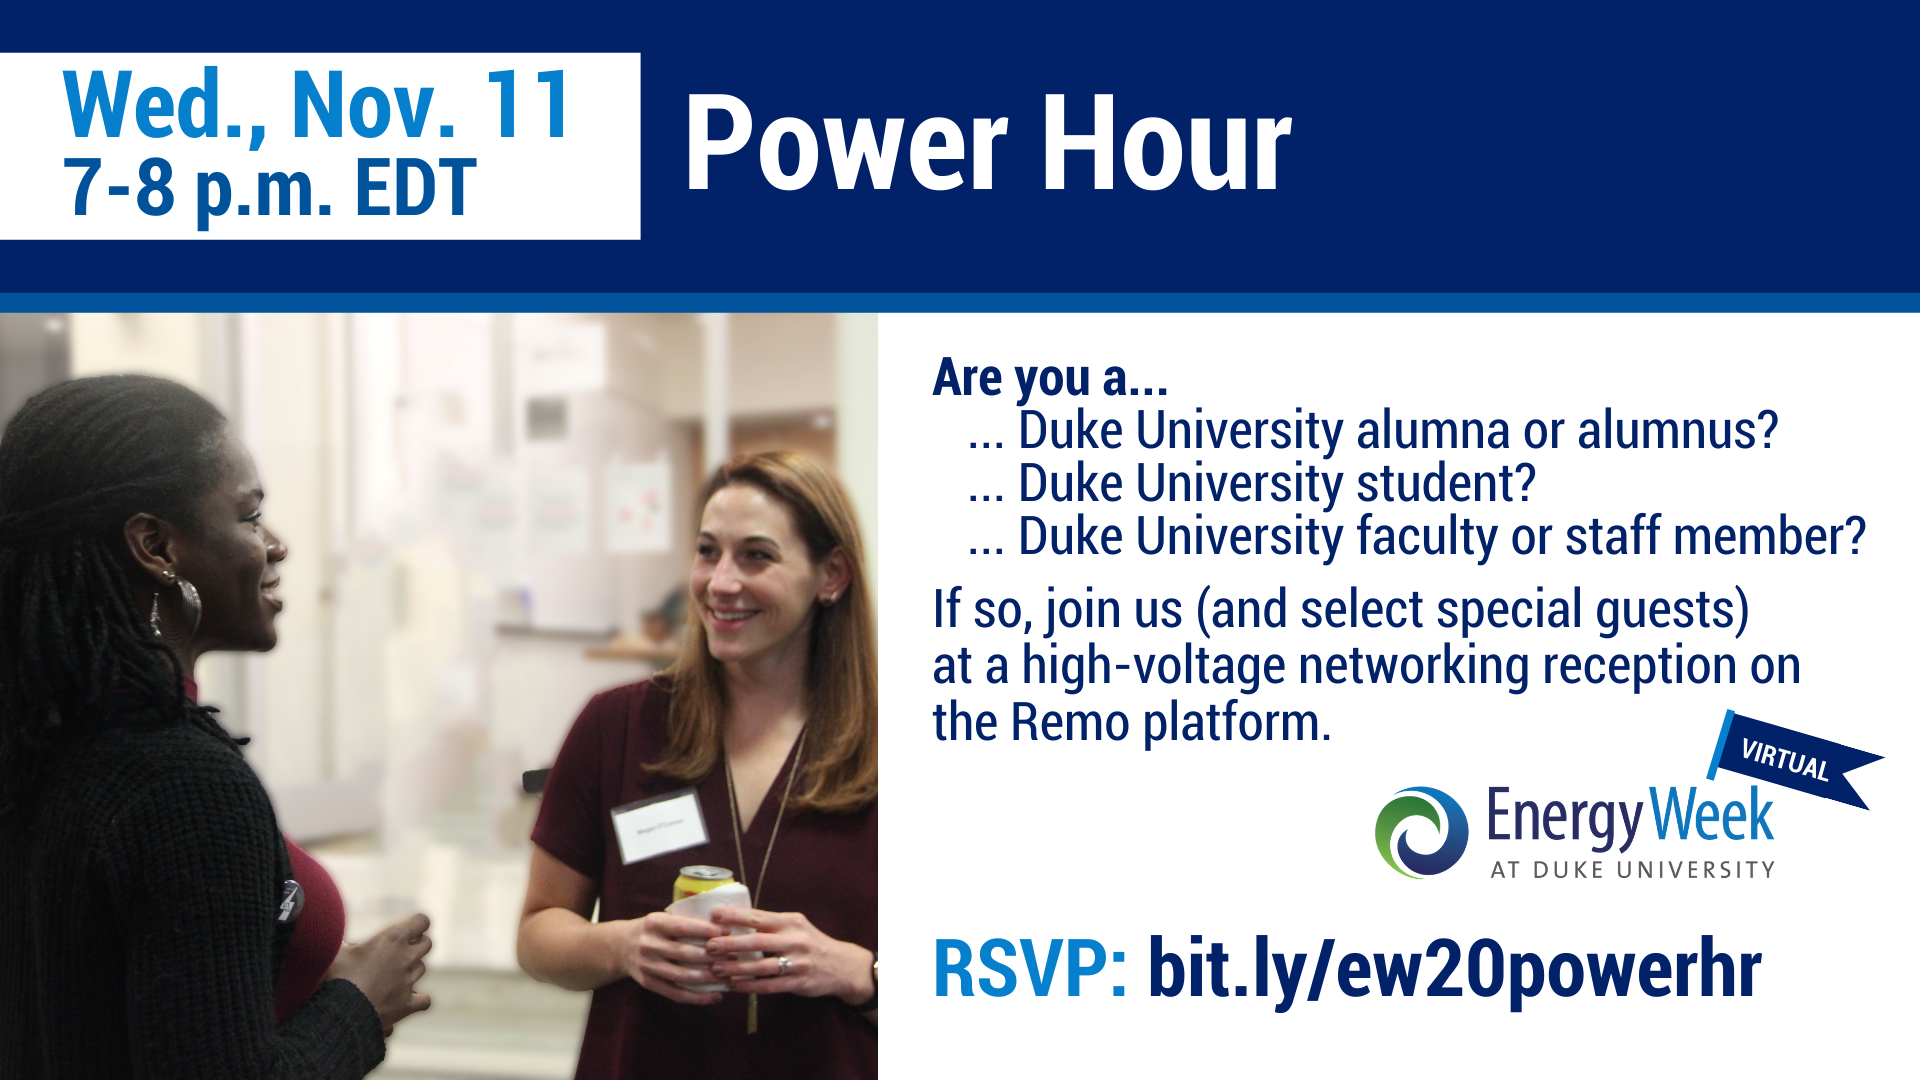 Alumni are invited to attend the Power Hour virtual networking session after the Duke University Energy Conference.